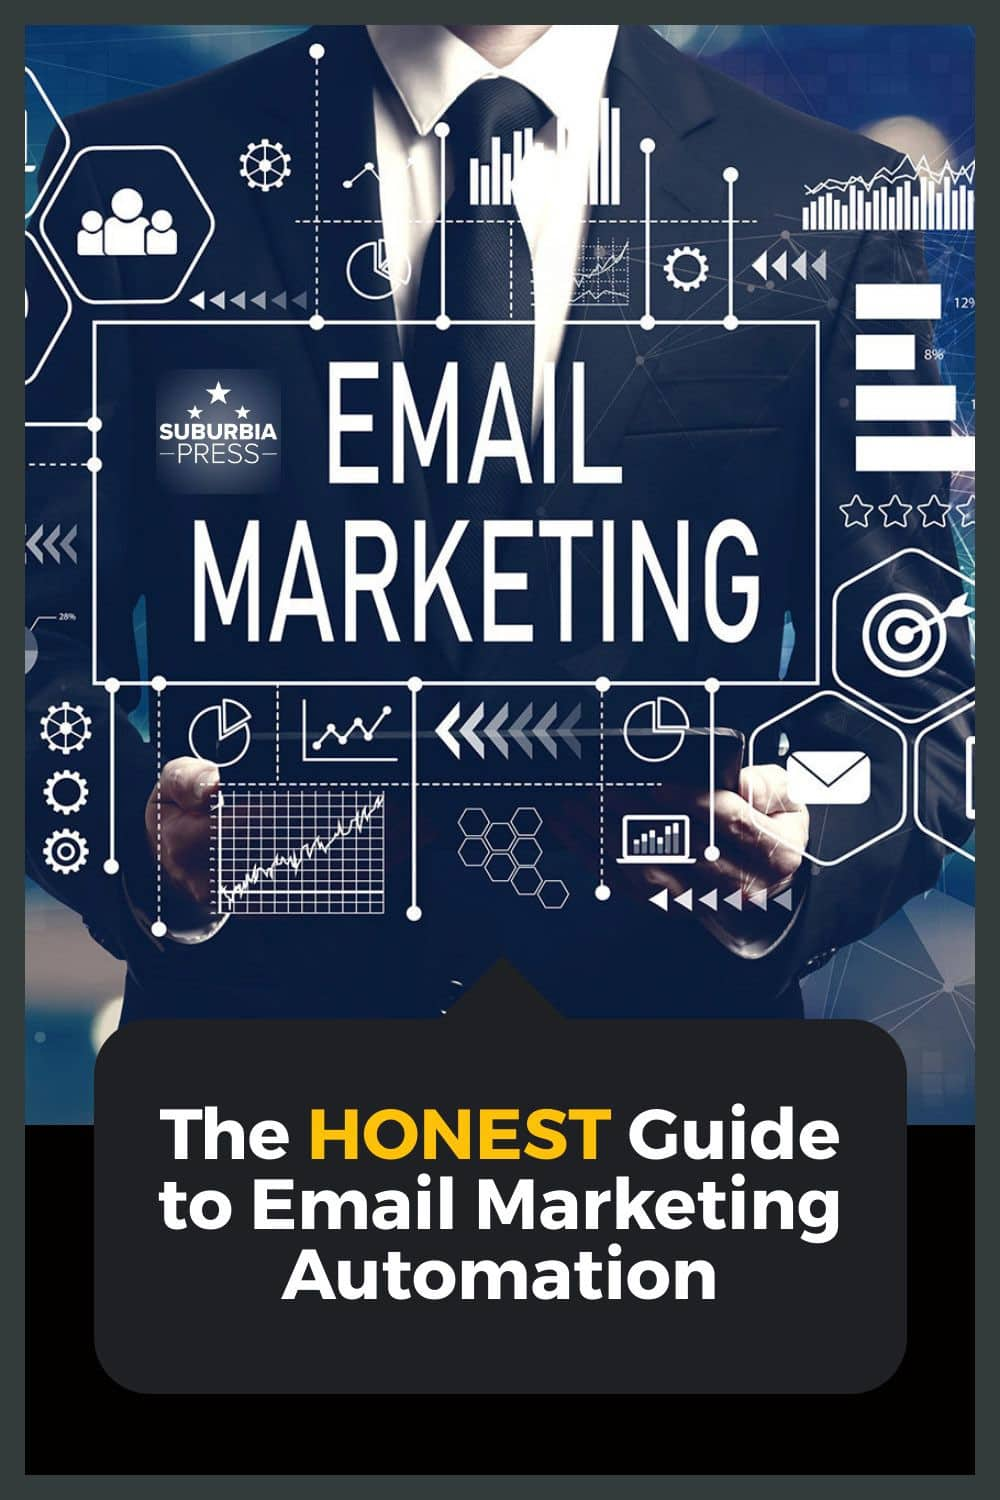 The HONEST Guide to Email Marketing Automation in 2021